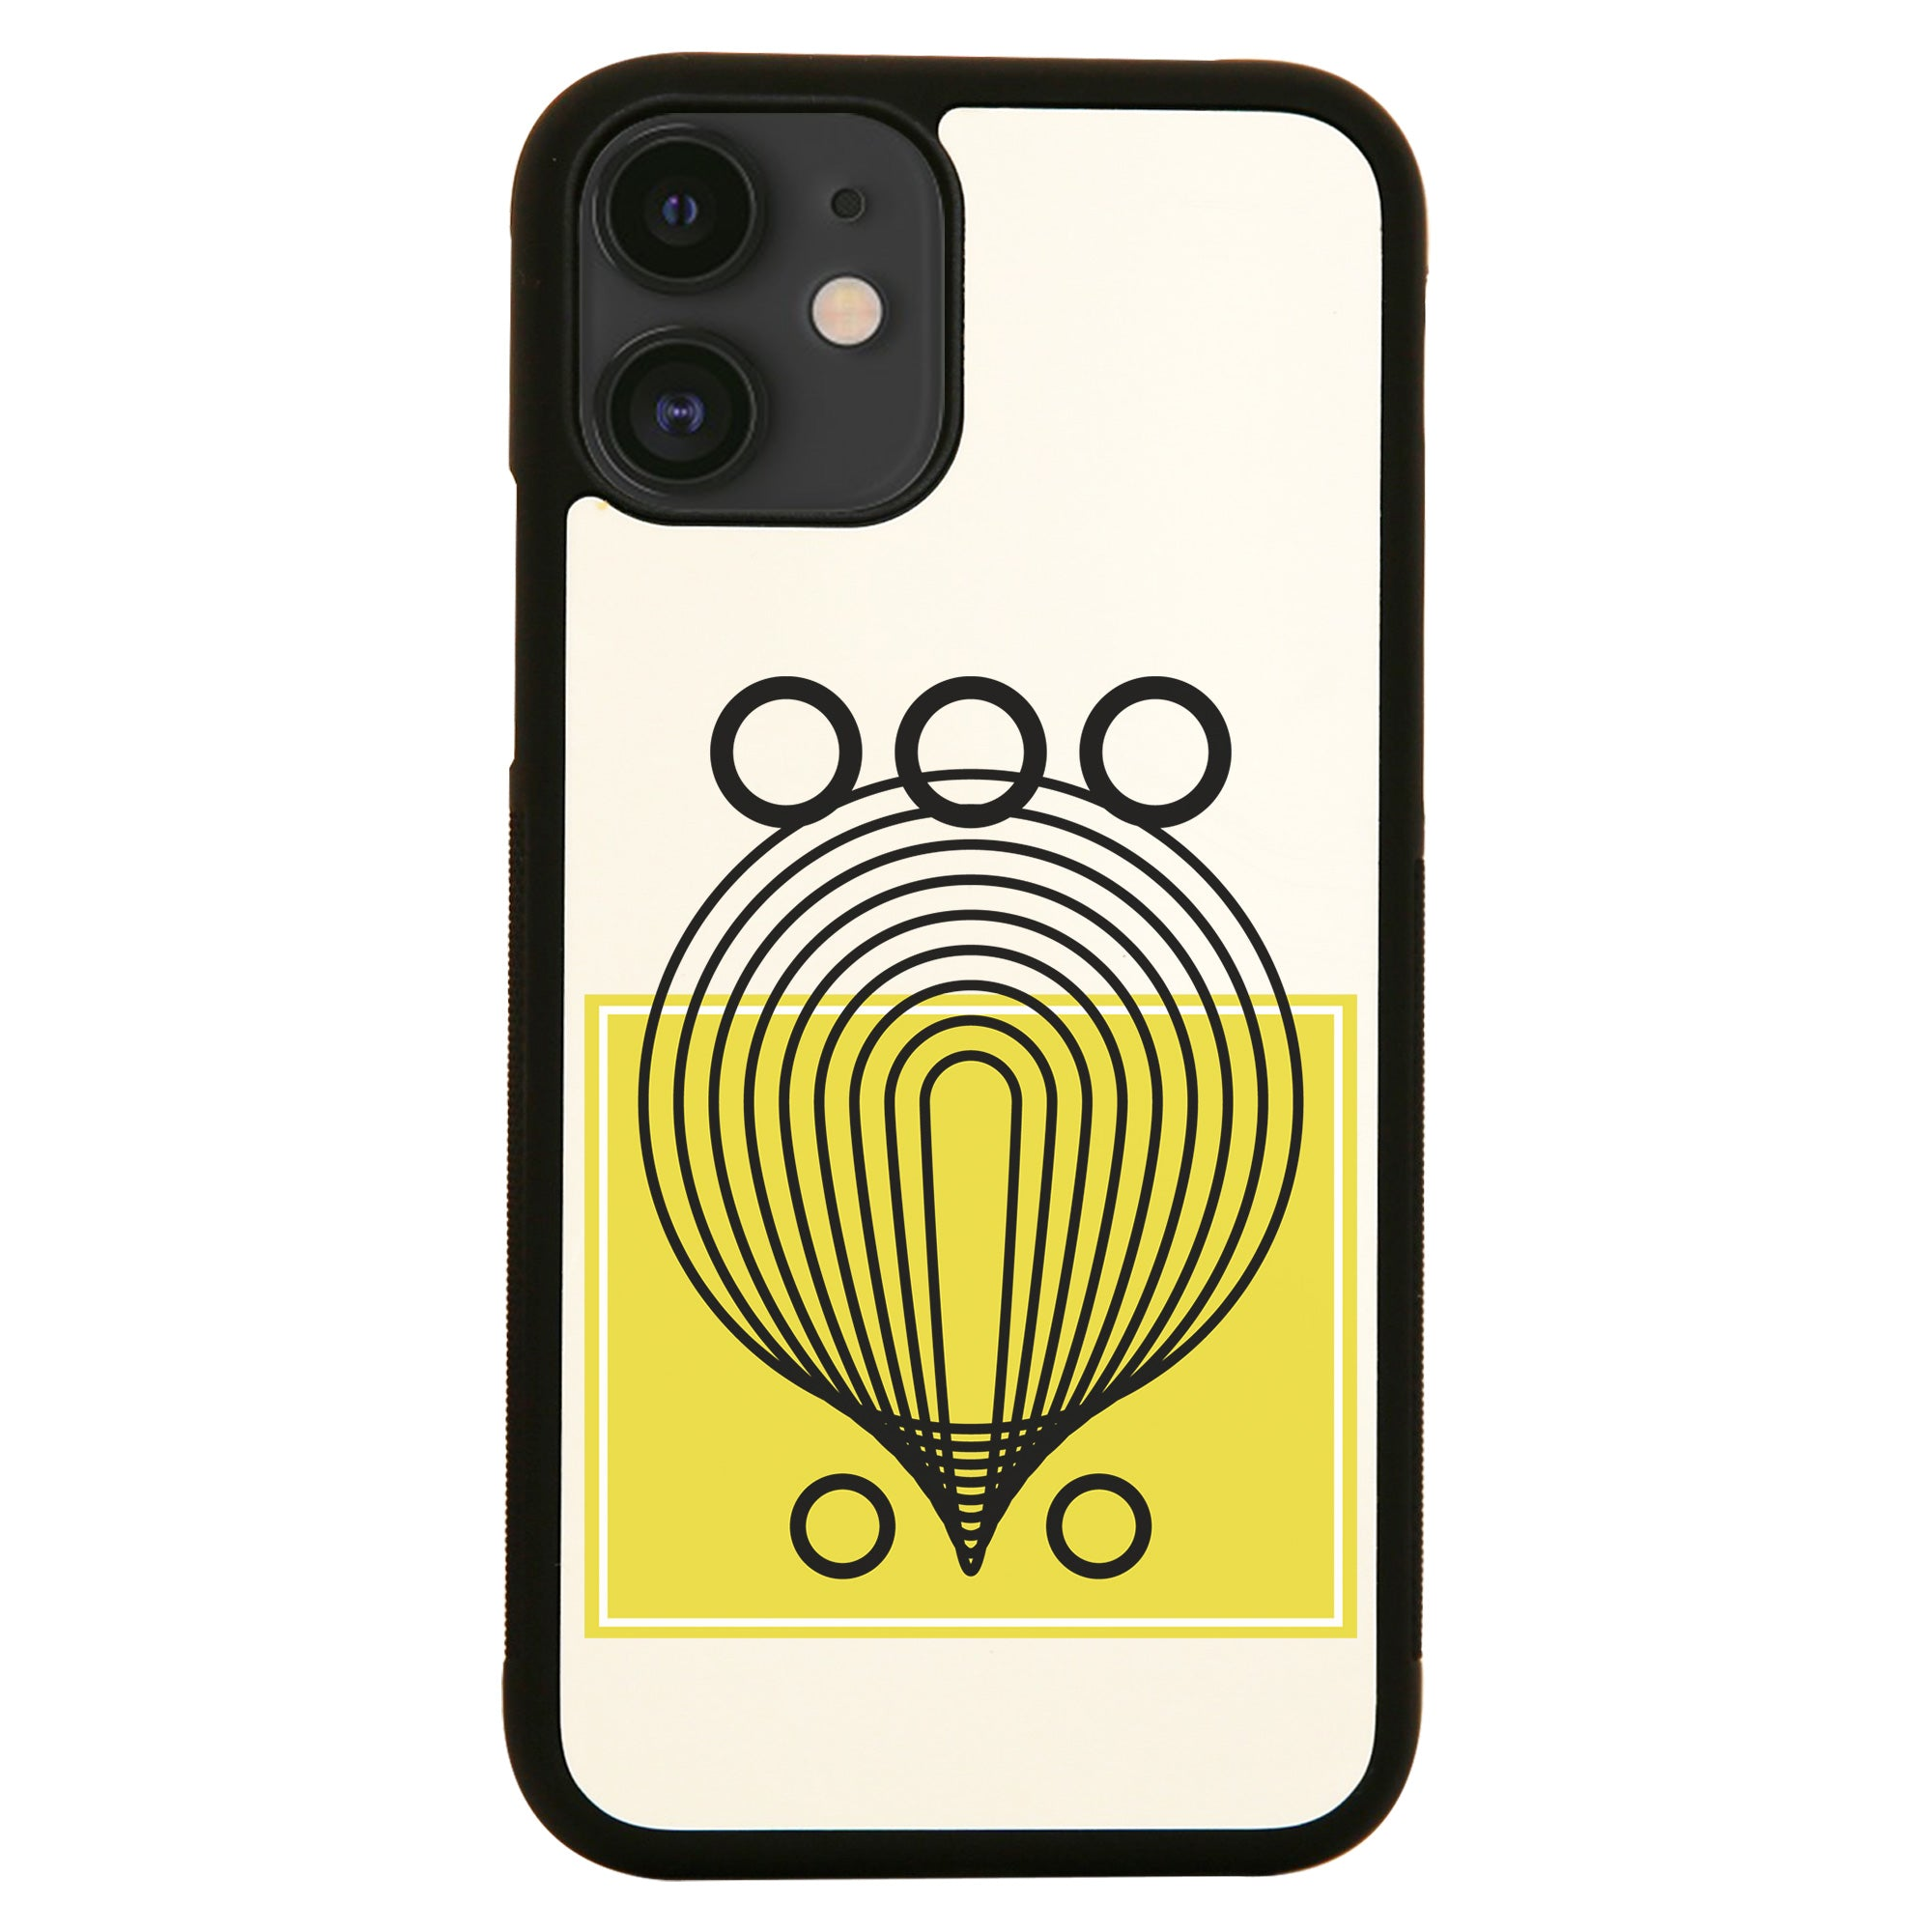 Geometric abstract shapes iPhone case